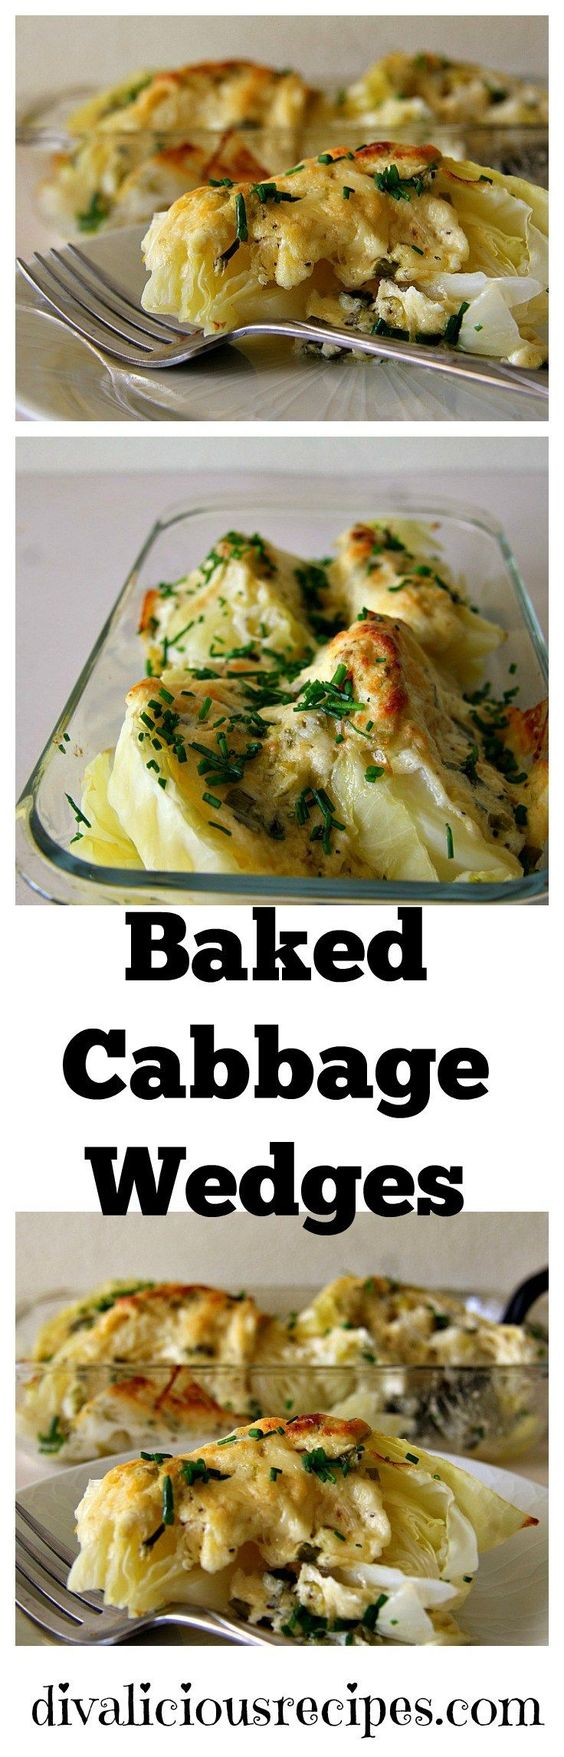 Baked Cabbage Wedges.